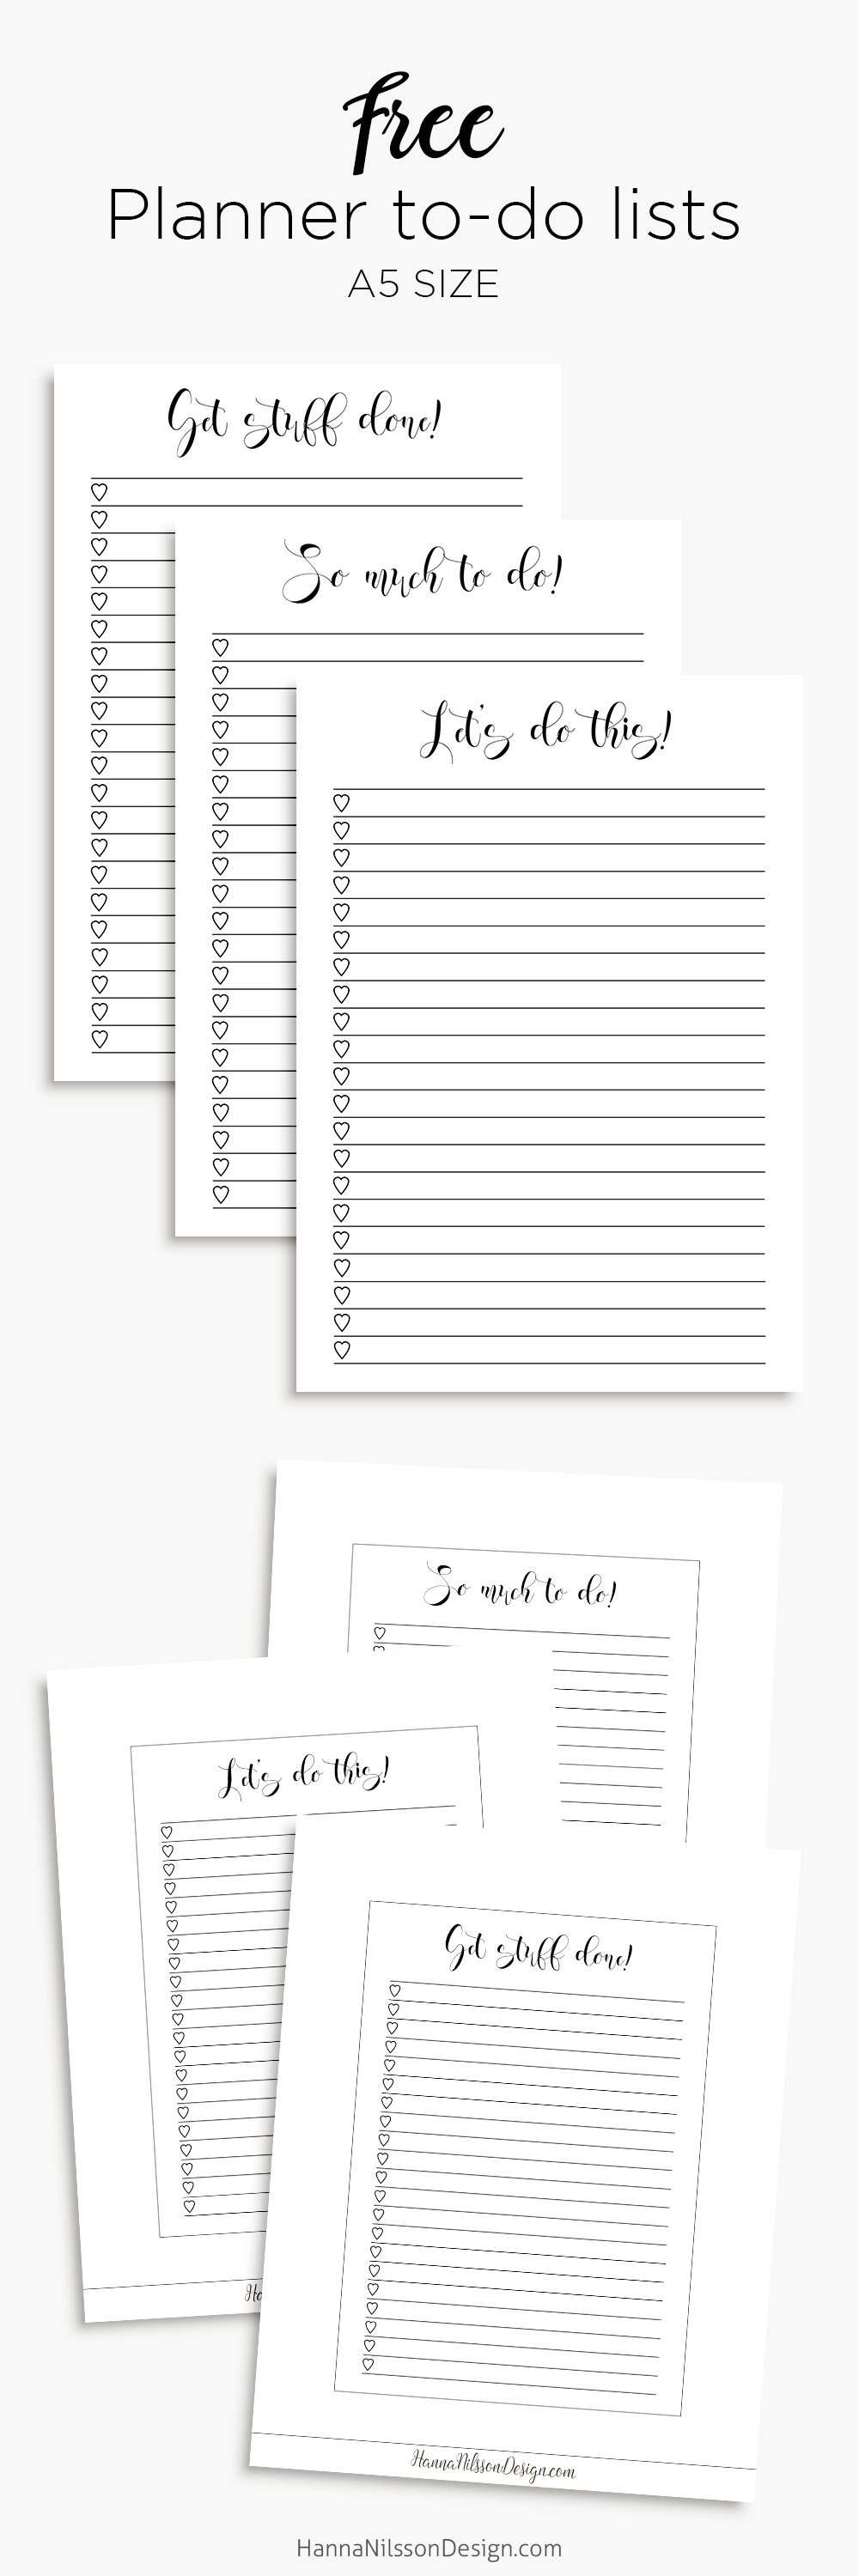 photograph regarding Printable Lists named Planner toward-do lists printable in just A5 and Individual dimension